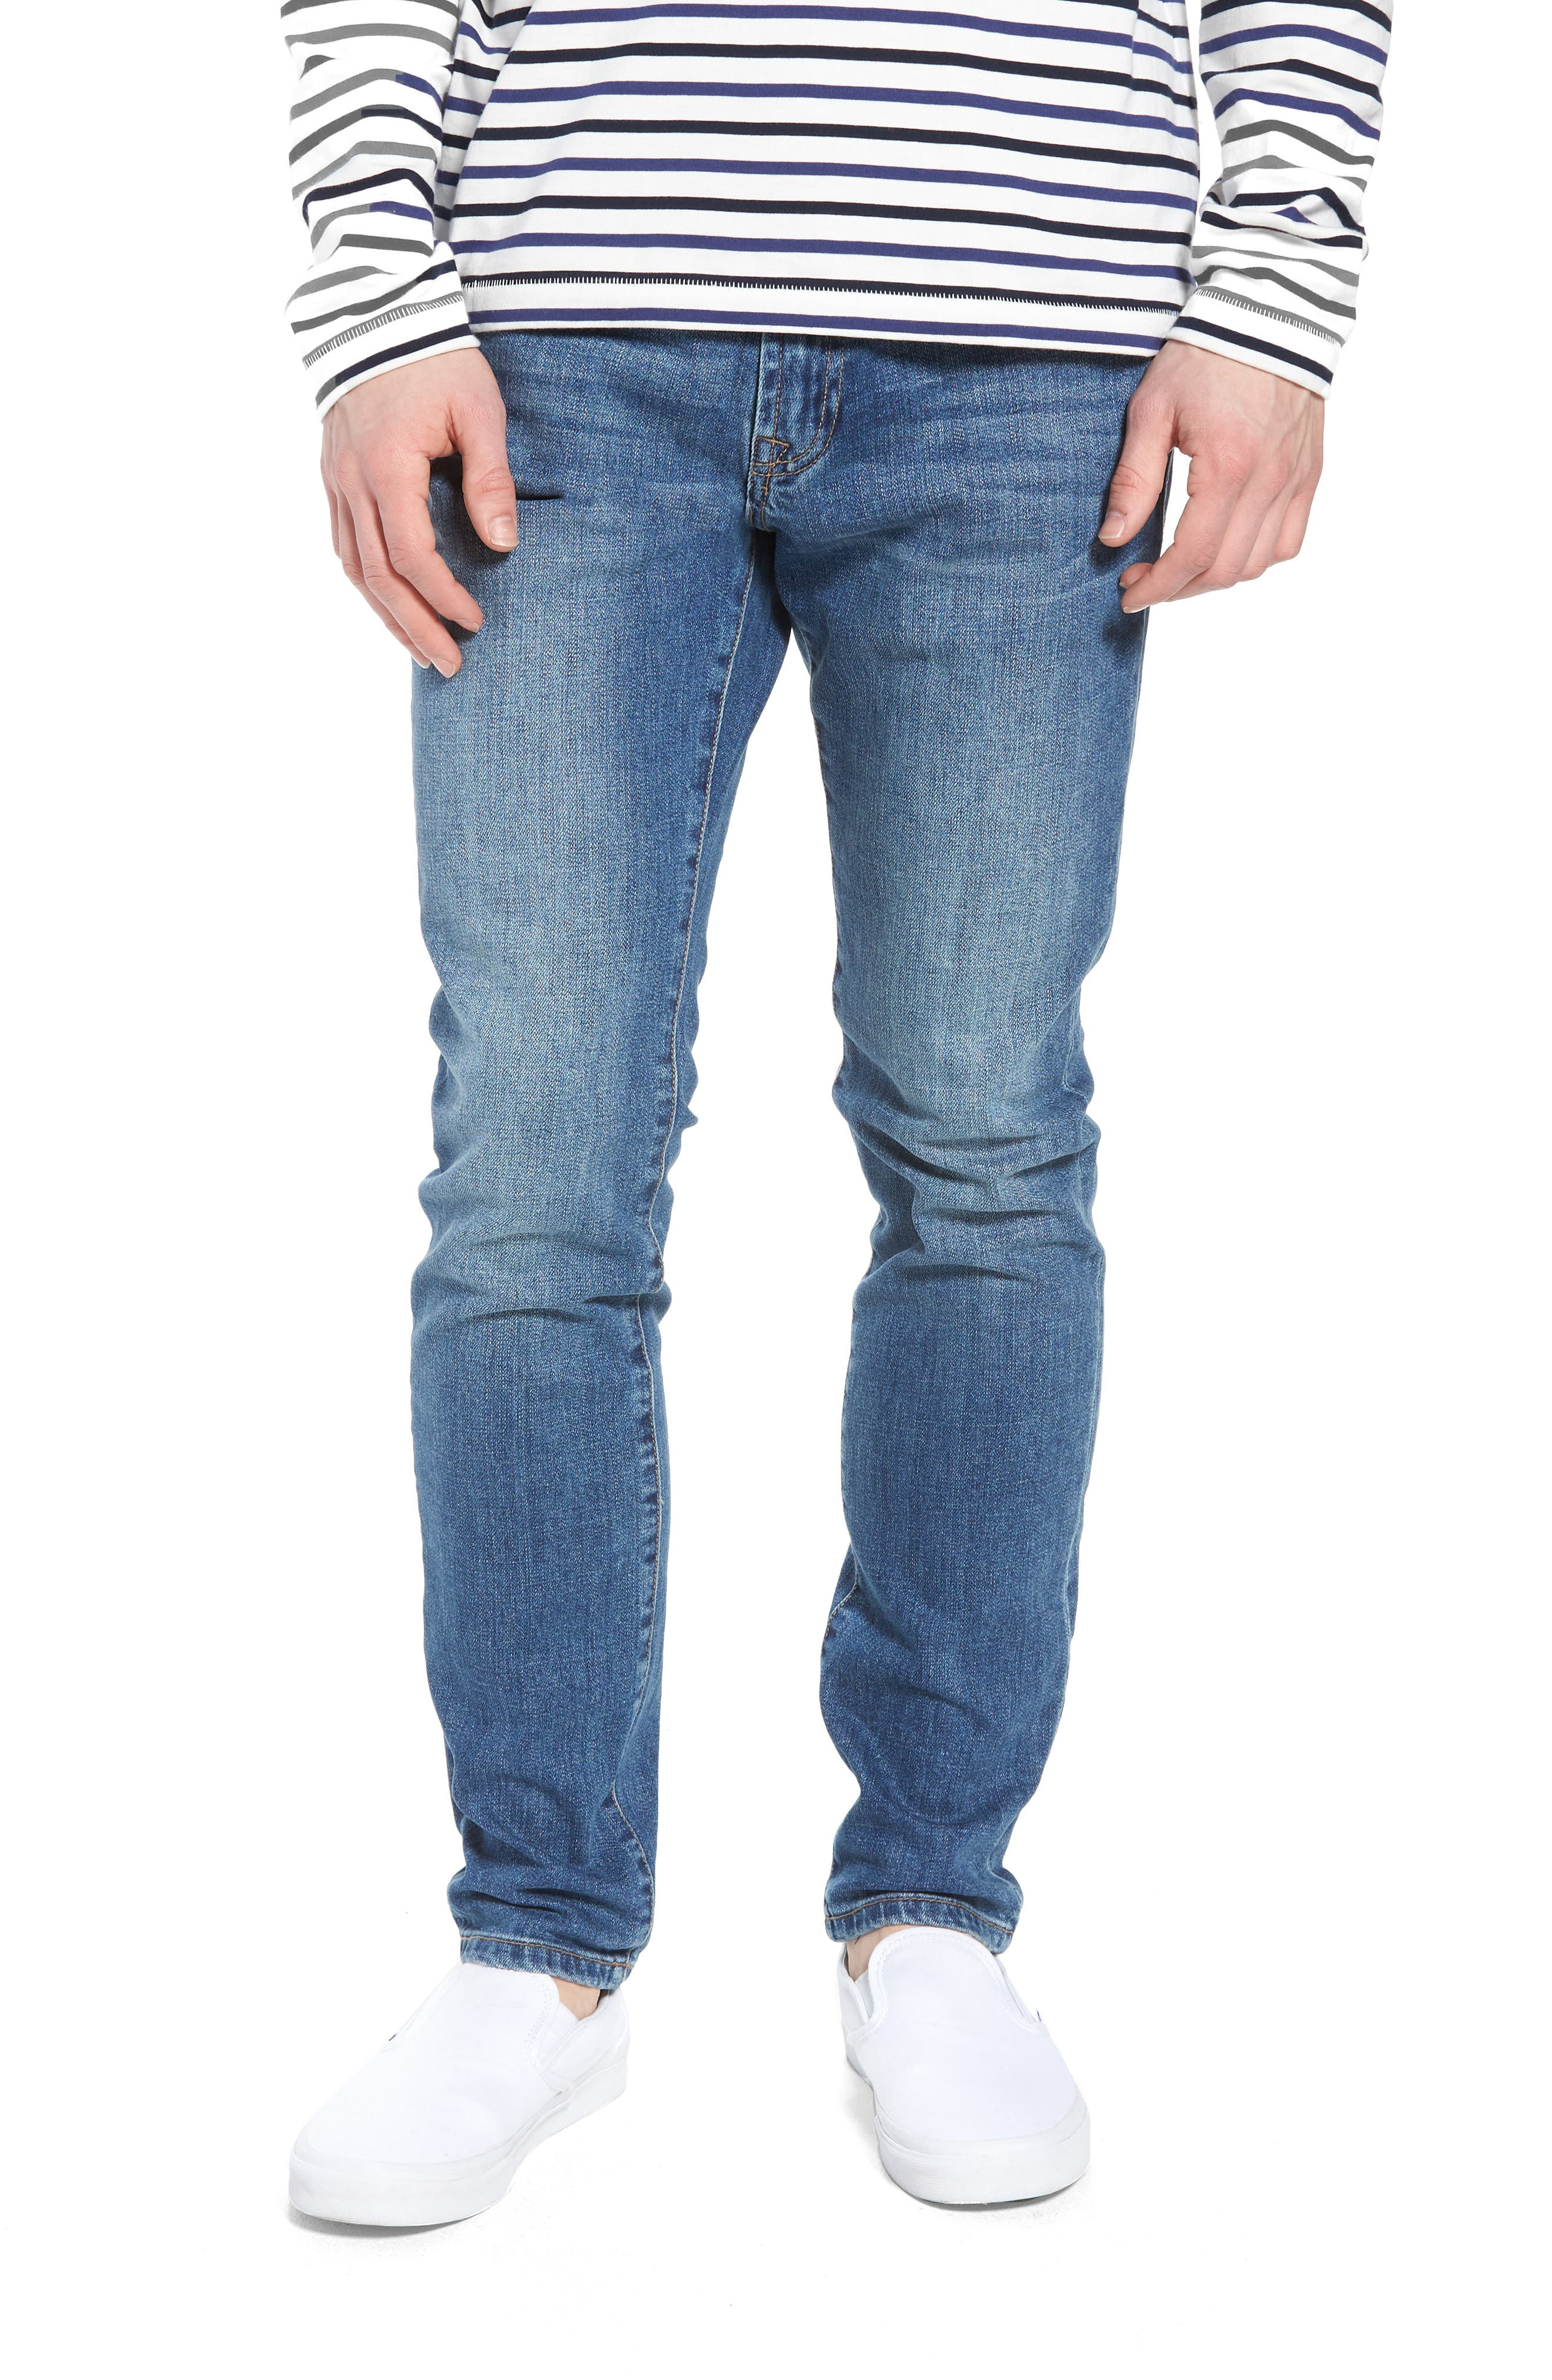 Jeans Co. Bond Skinny Fit Jeans,                         Main,                         color, 401